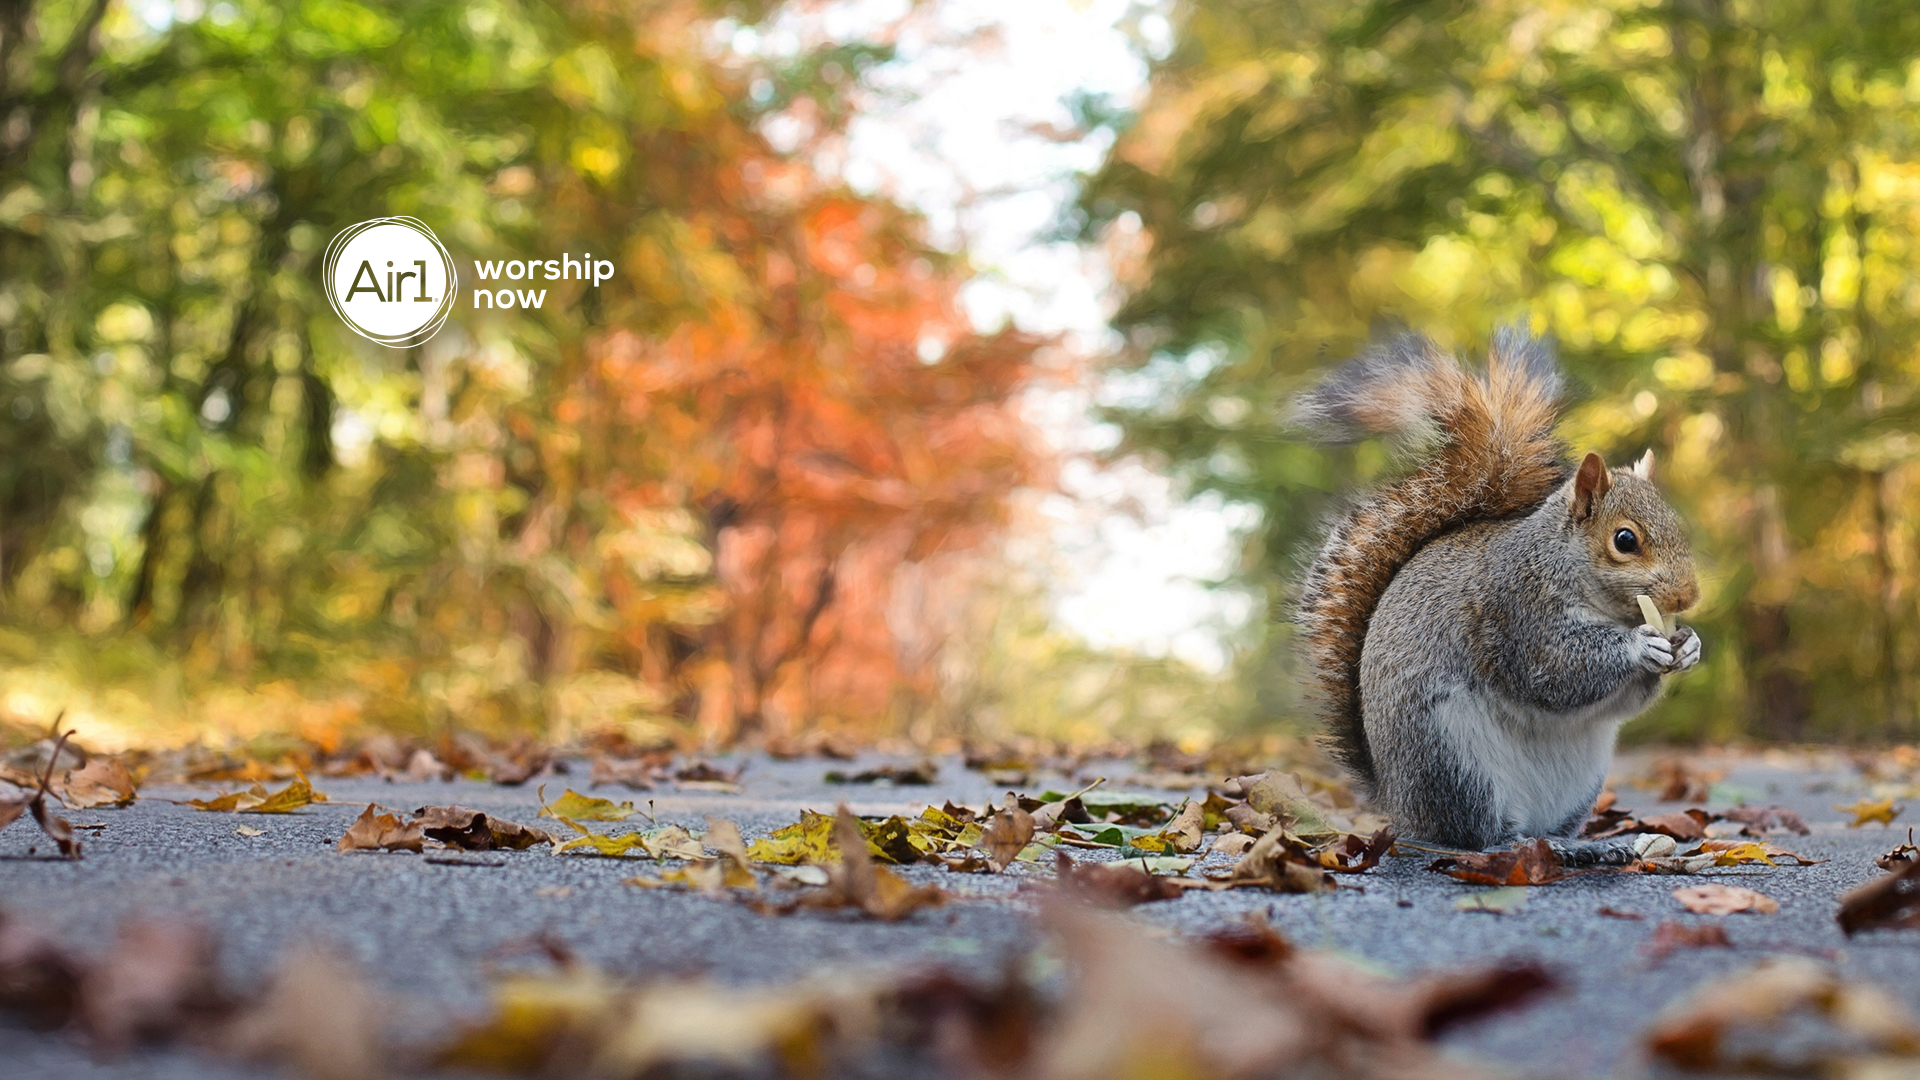 Squirrel Background For Zoom Calls On Thanksgiving